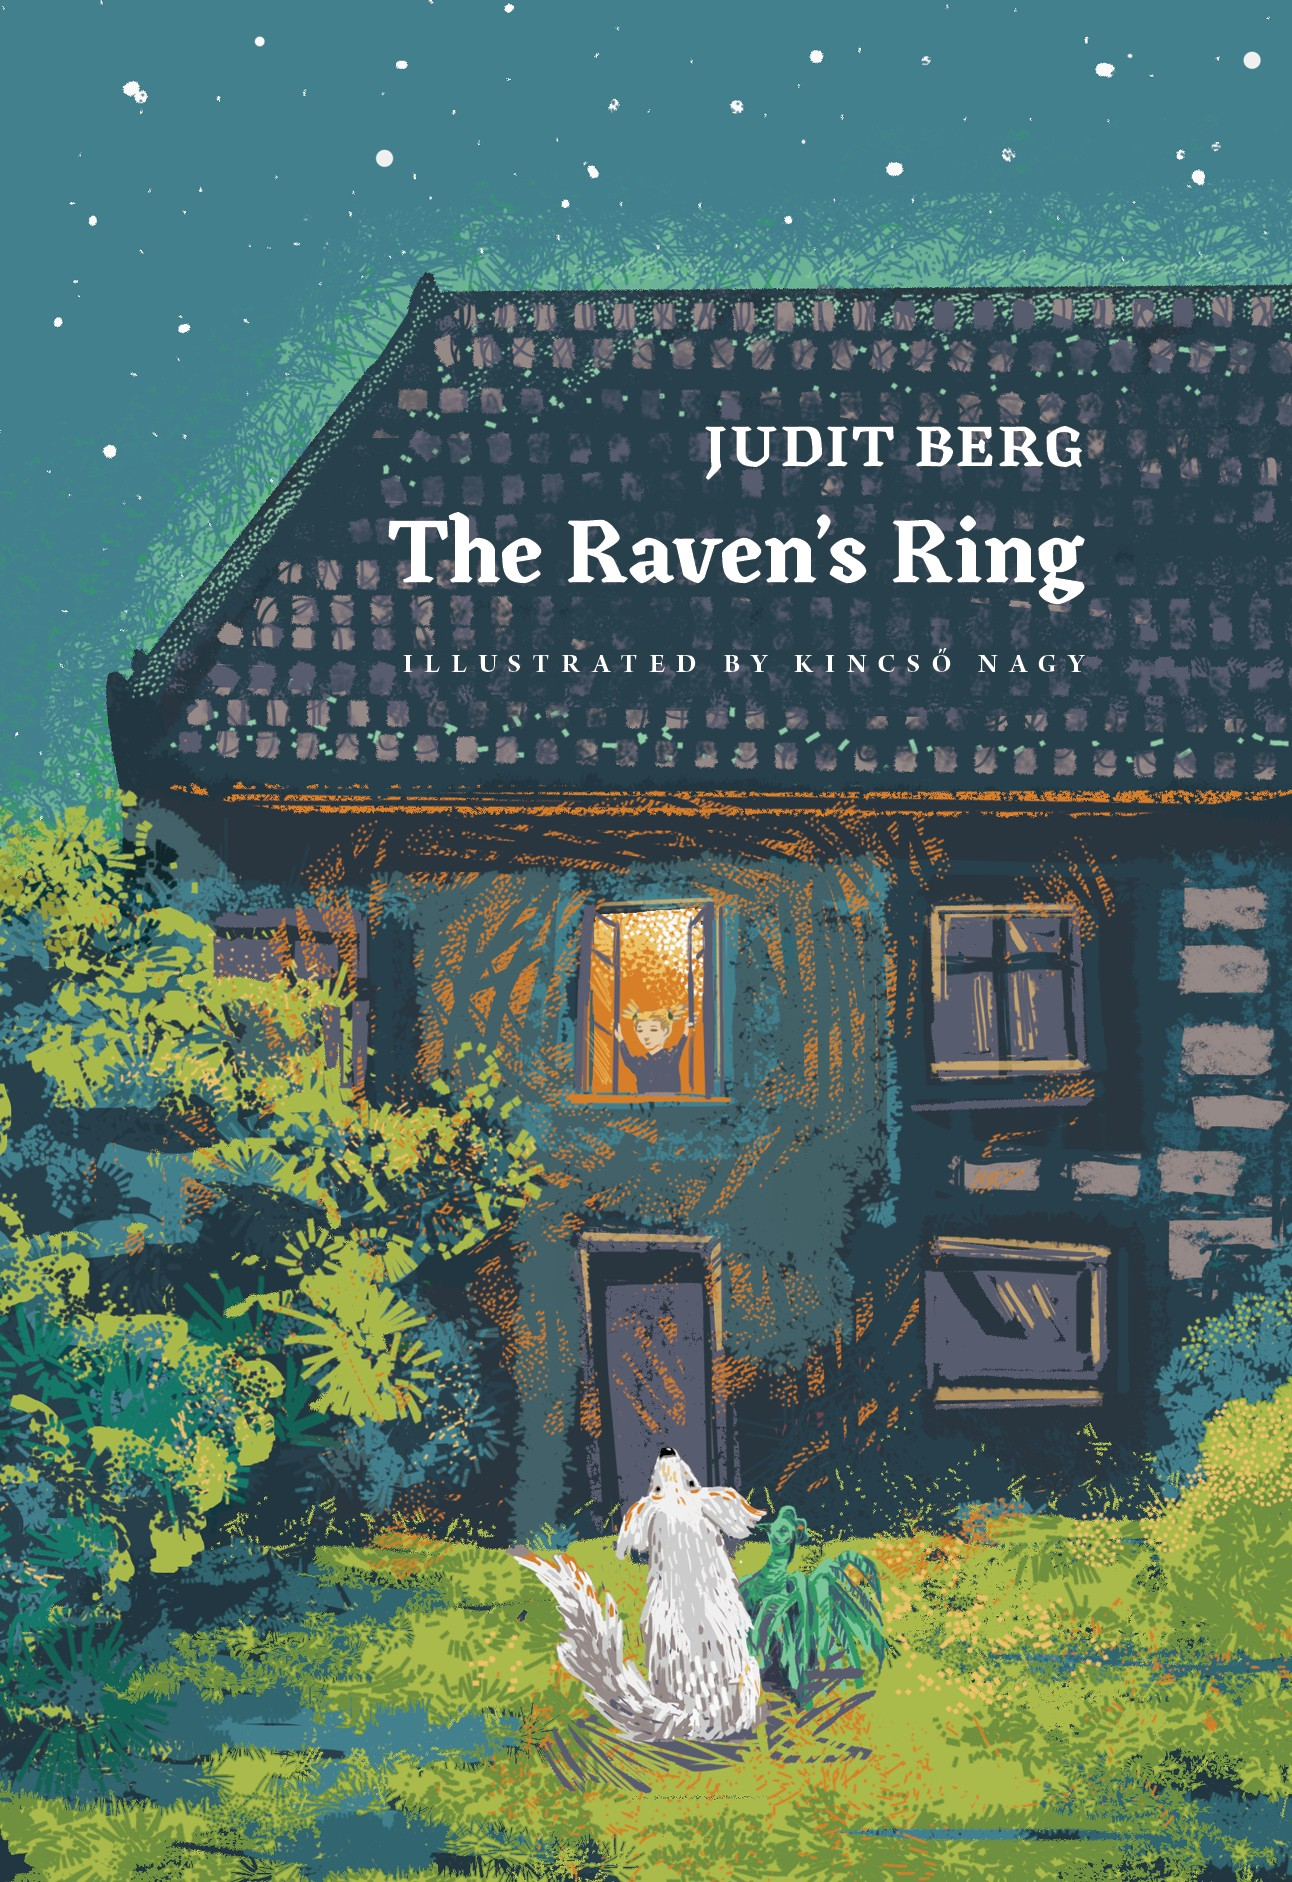 The Raven's Ring